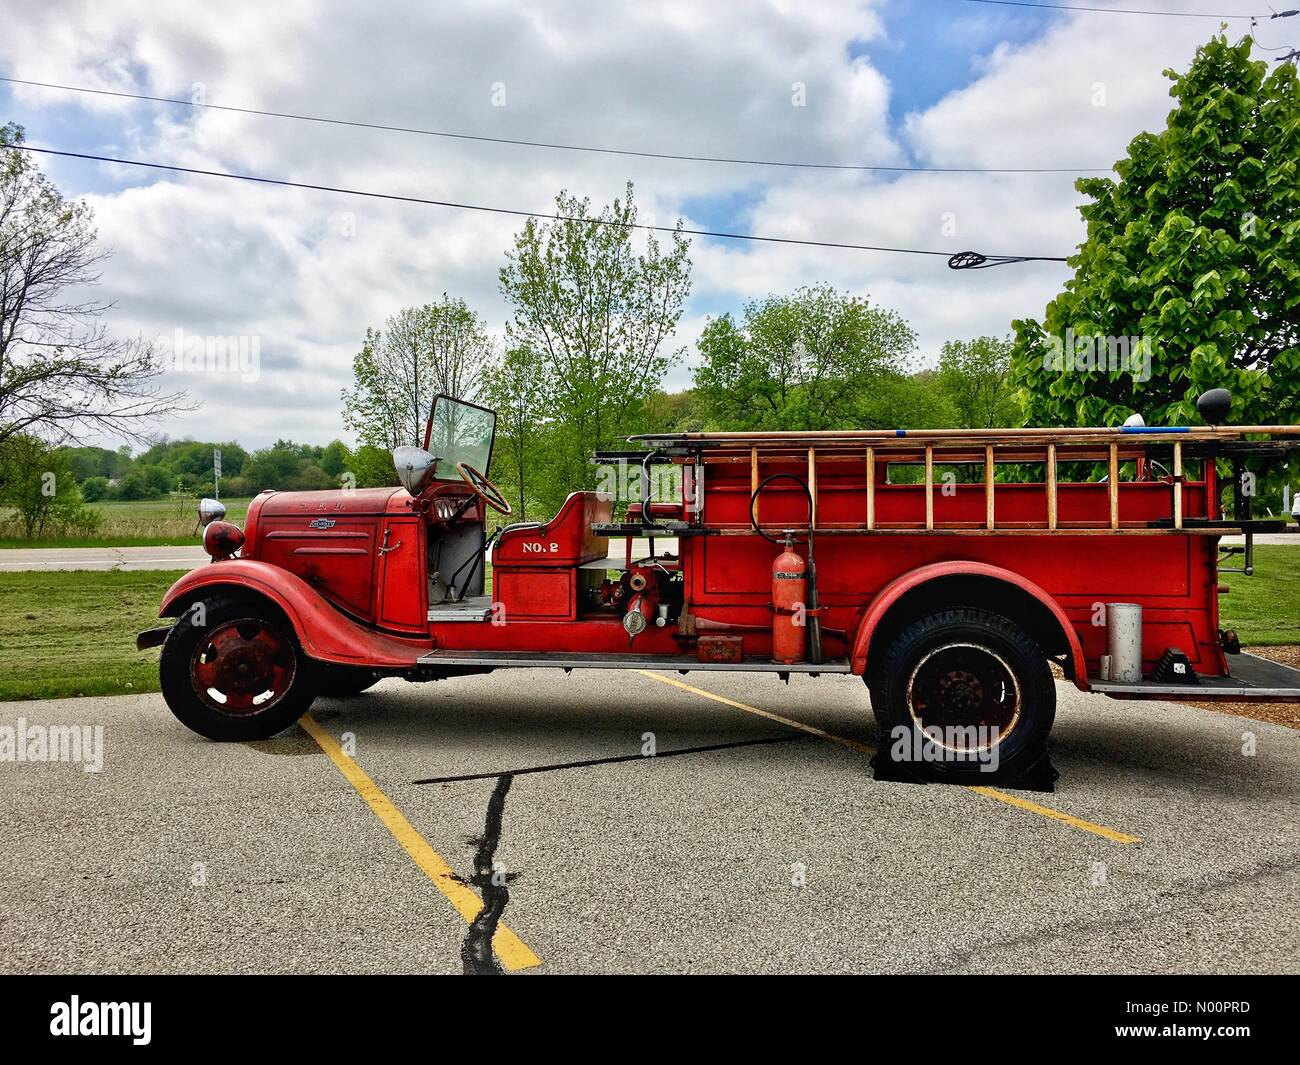 Pewaukee, USA. 22nd May, 2018. Fire Station Open House & Blood Drive, 22nd May 2018, Pewaukee, WI, USA, Lisbon Fire Department holds tours, and community blood drive, DianaJ/StockimoNews/Alamy Credit: Diana J./StockimoNews/Alamy Live News - Stock Image